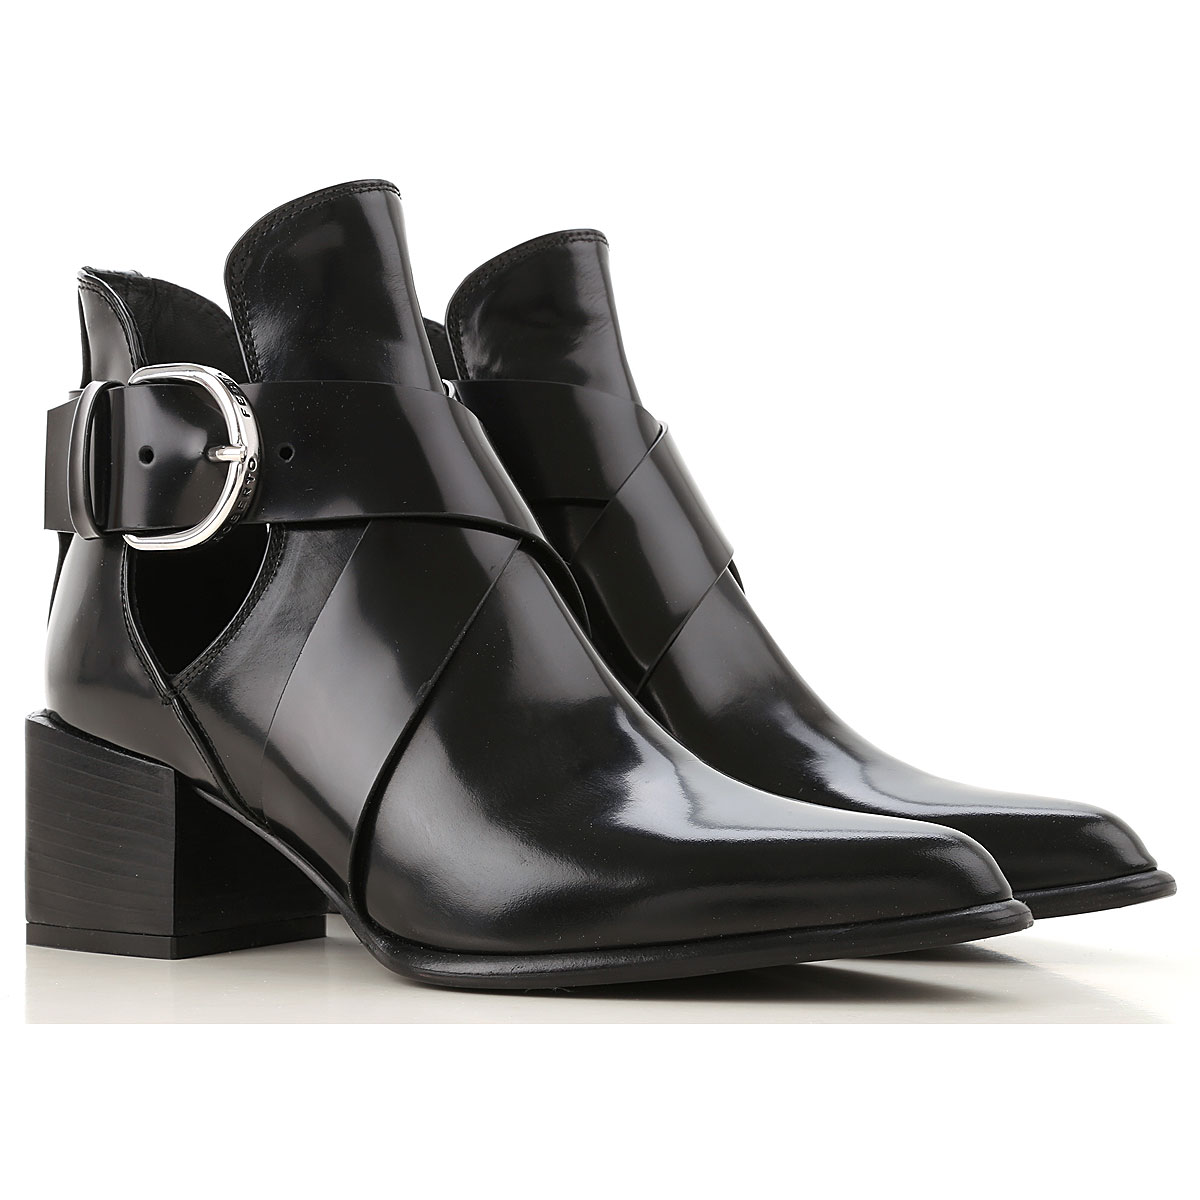 Roberto Festa Boots for Women, Booties On Sale, Black, Patent Leather, 2019, 10 6 7 8 9.5